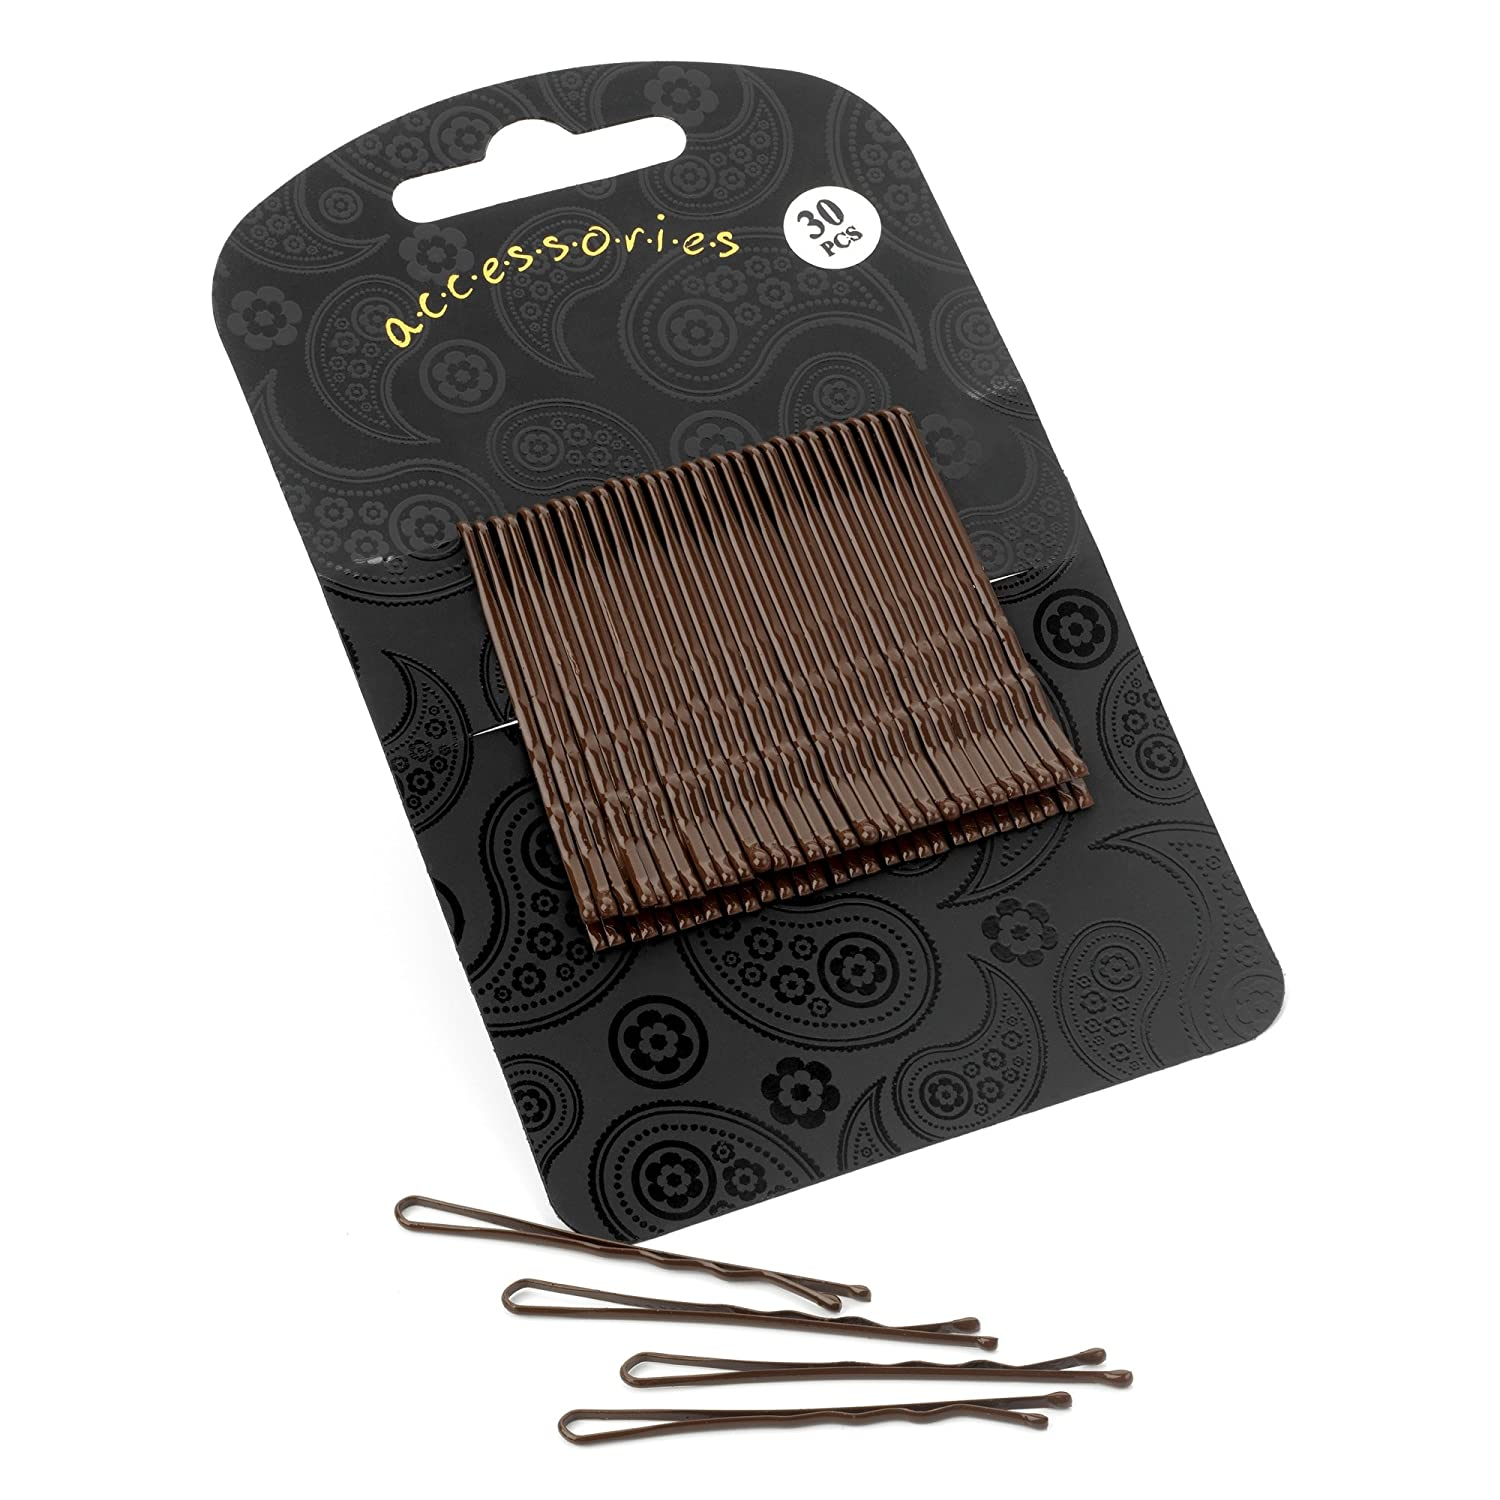 30 Short Hair Bobby Pins Hair Grip Set Brown 5cm HA28500